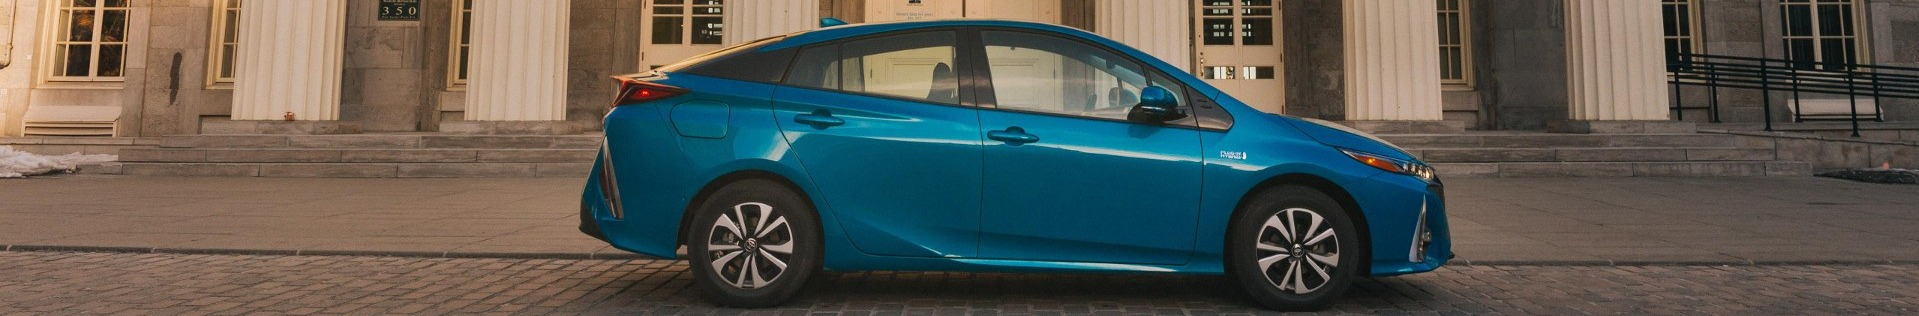 2018-Toyota-Prius-Prime-Plug-in-Electric-Hybrid-Toronto-Feature-2